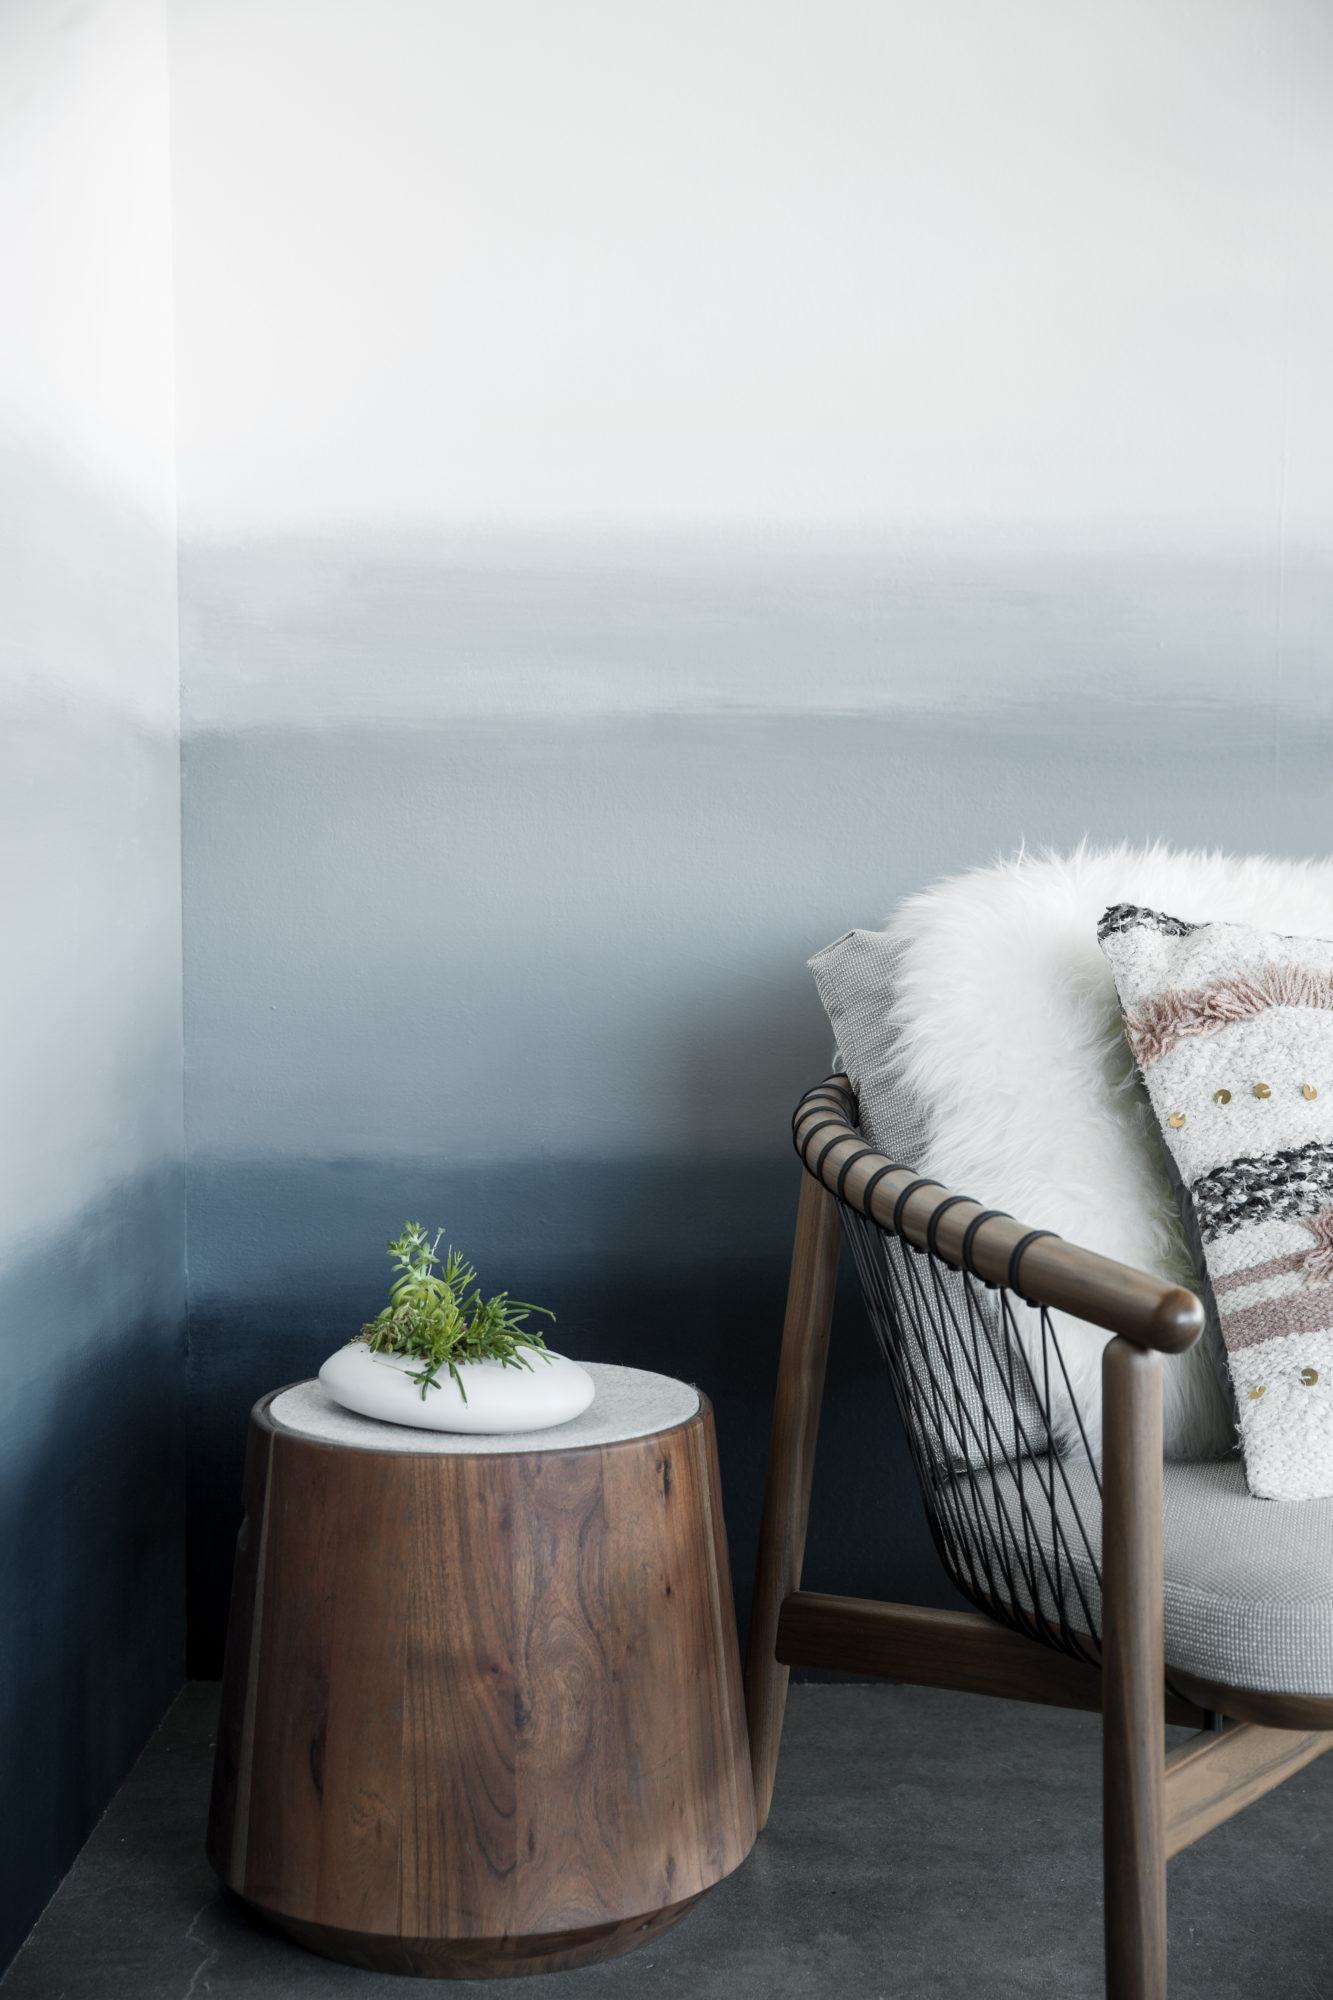 How To Paint An Ombré Wall